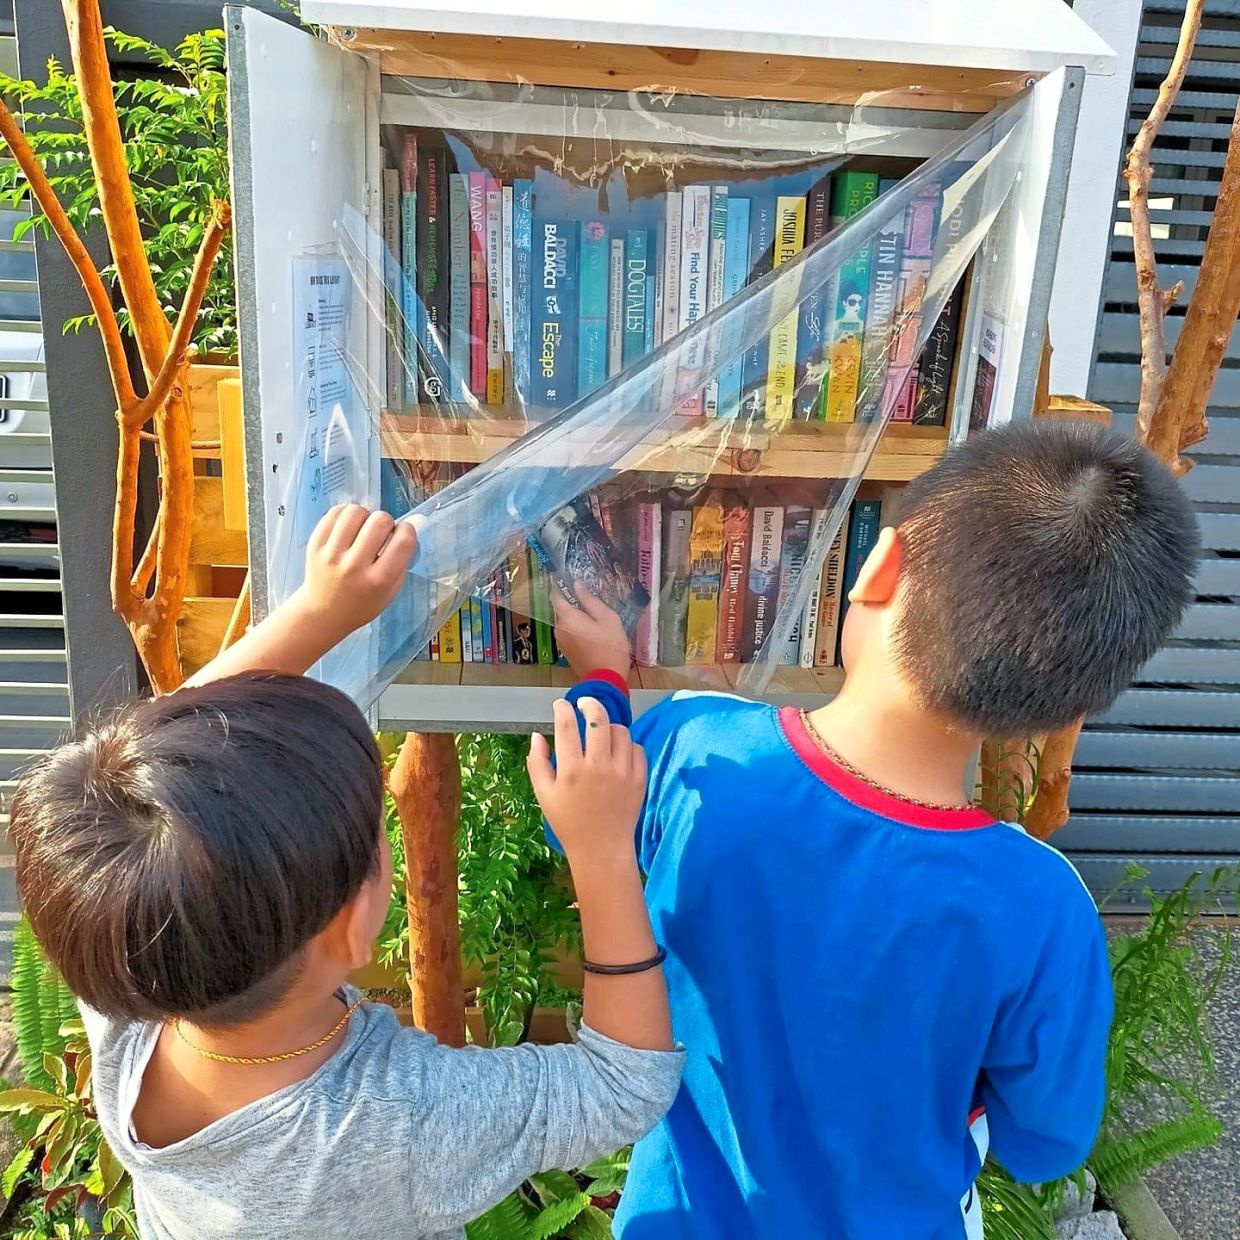 Children are always excited to source for new books at the street library.